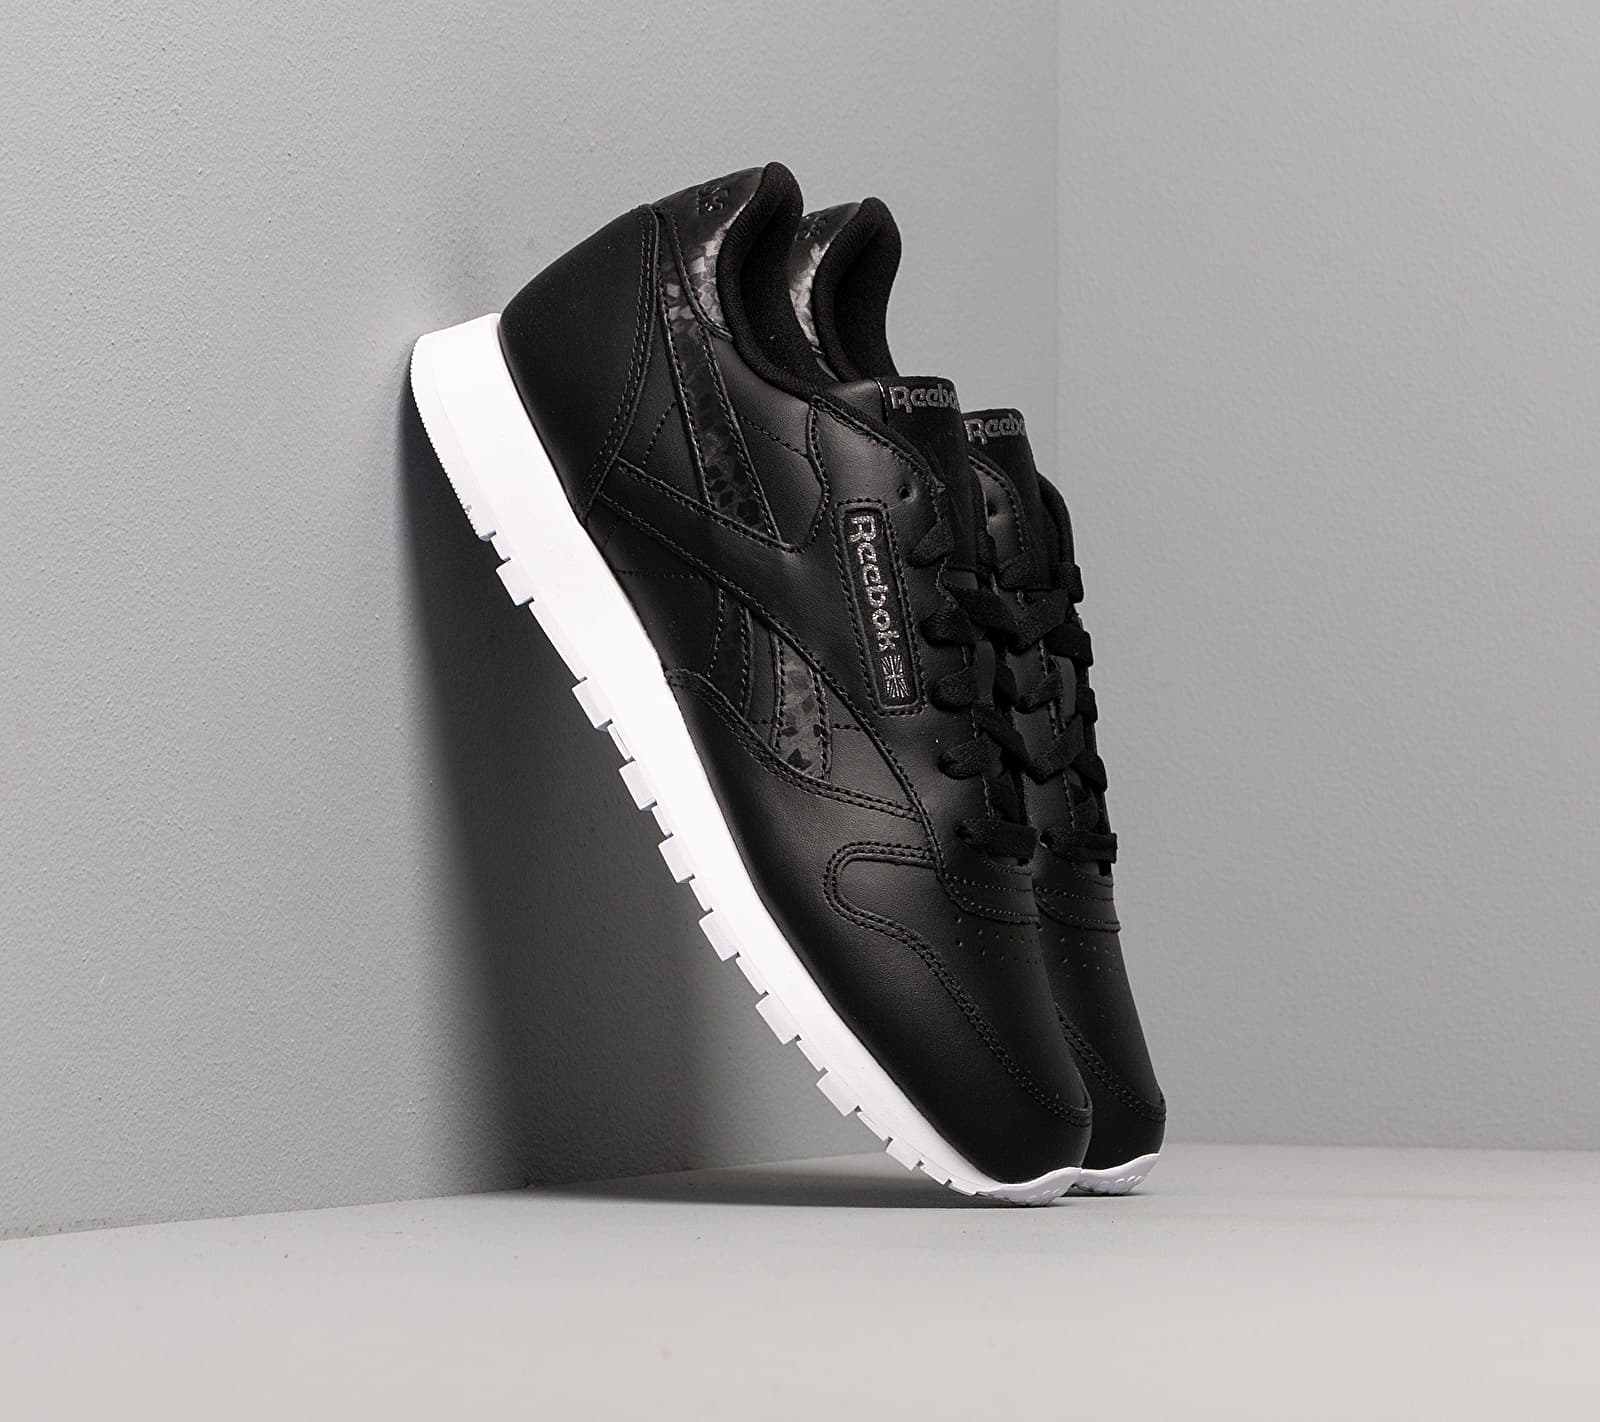 Reebok Classic Leather Black/ Black/ White EUR 36